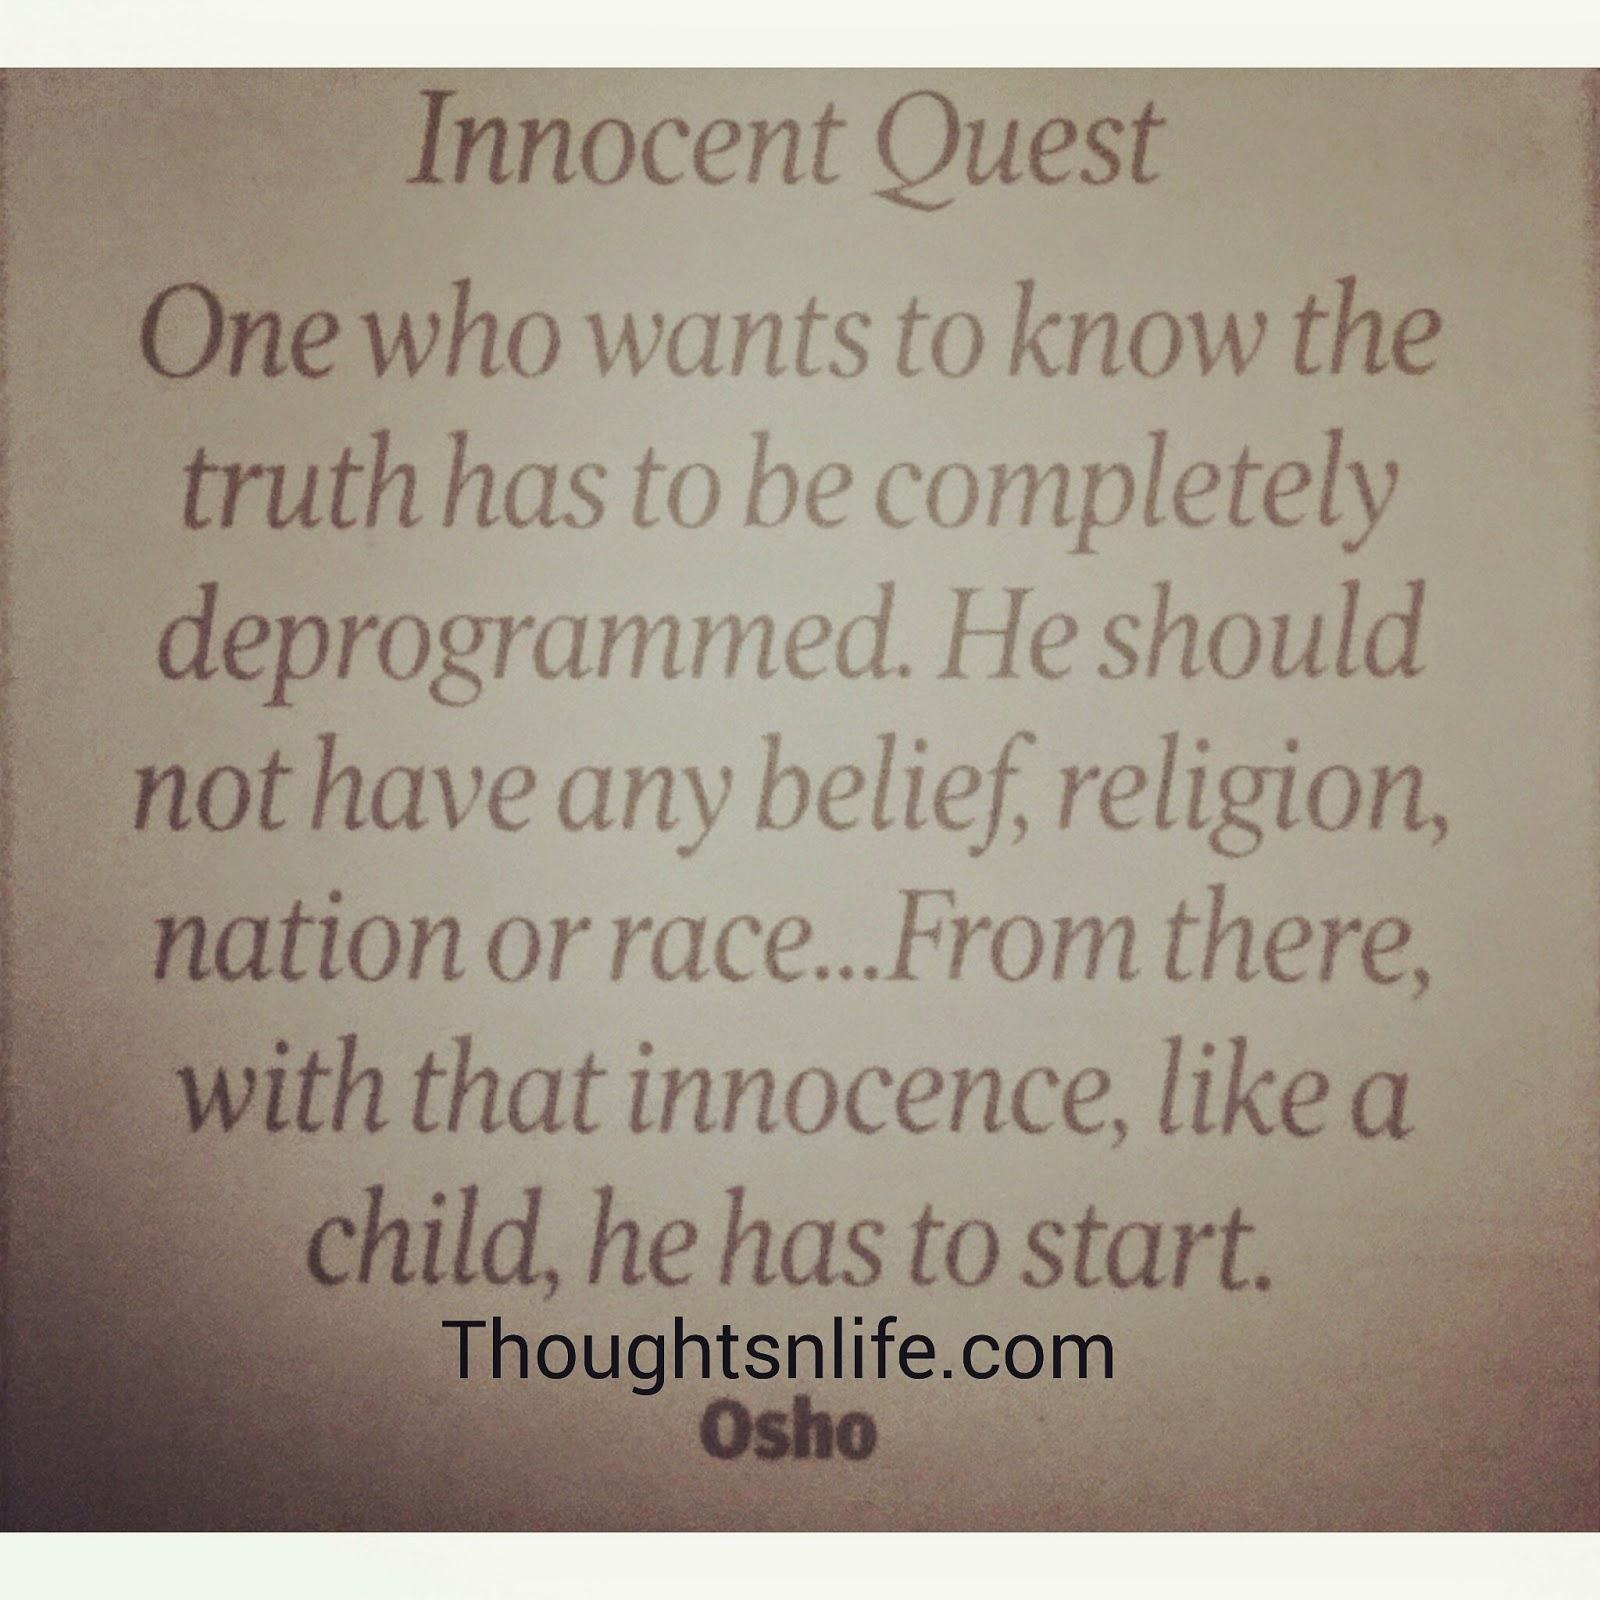 Thoughtsnlife.com: Innocent Quest- one who wants to know the truth has to be completely deprogrammed. He should not have any belief, religion, nation or race..From there, With that innocence, Like a child, he has to start. ~ OSho